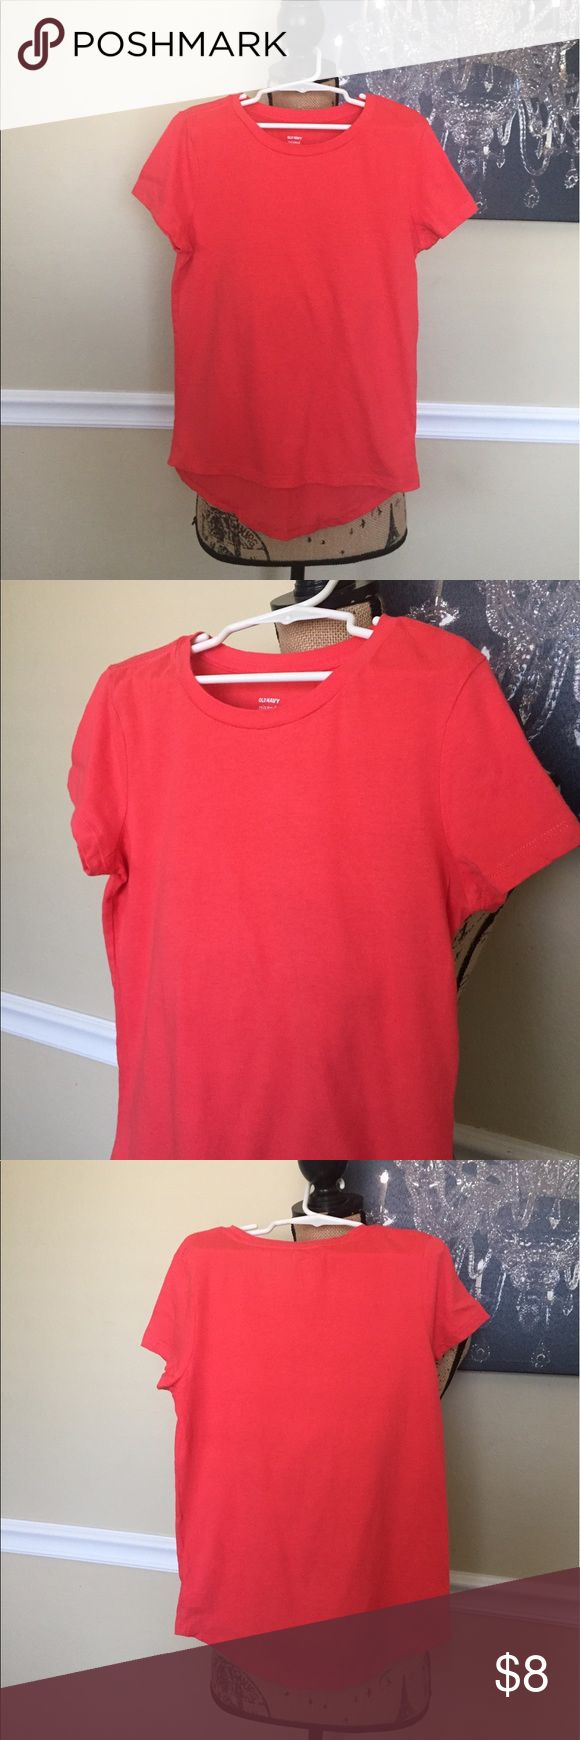 Orange Old Navy Tee This is a relaxed plain tee from Old Navy, size Medium 7/8. It has a Hi -low style & it is in excellent condition. Old Navy Shirts & Tops Tees - Short Sleeve